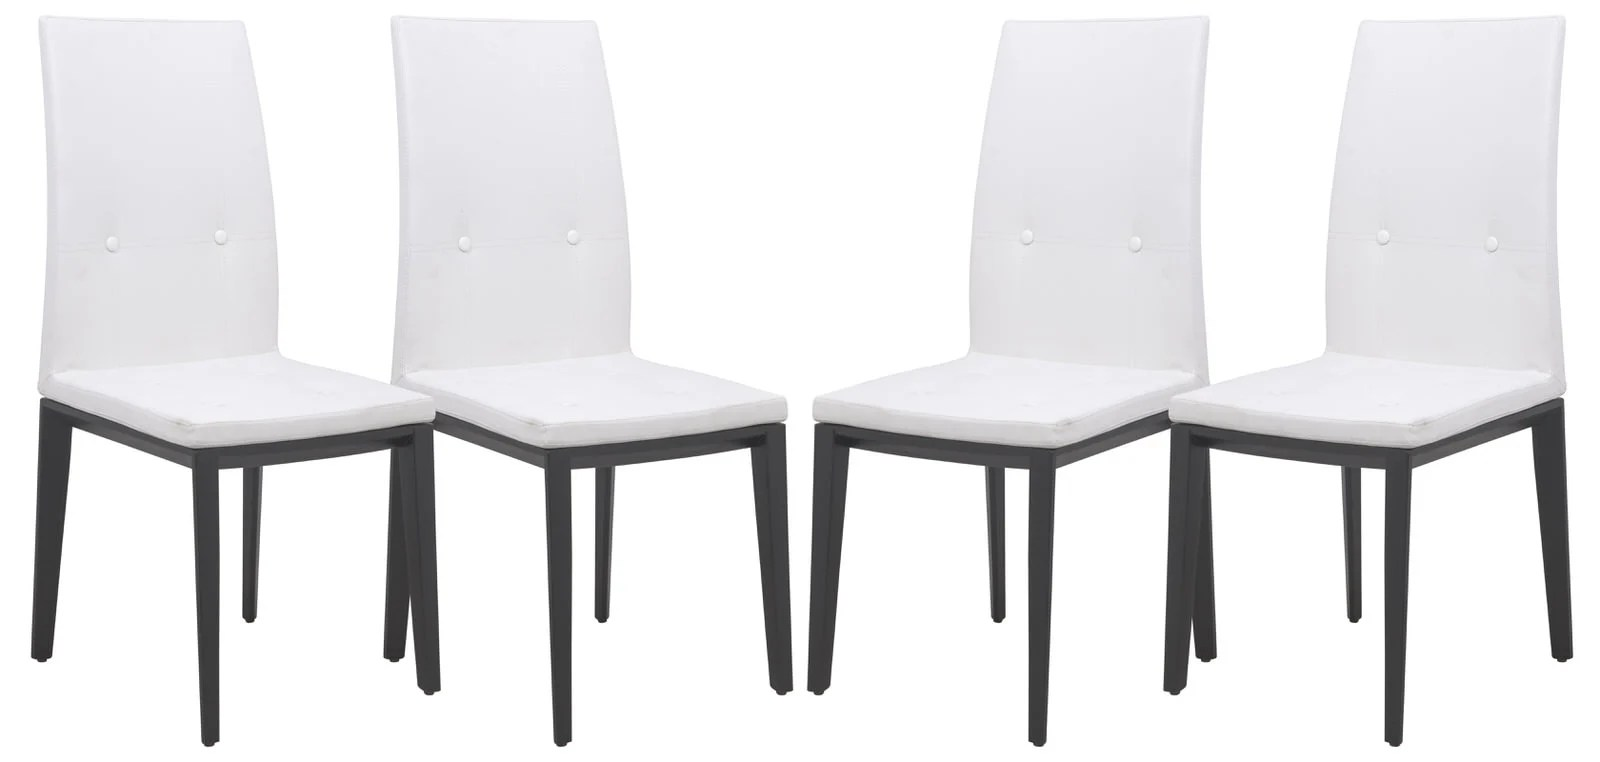 White Dining Chairs Somers Contemporary Faux Leather White Dining Chair Set Of 4 By Leisuremod